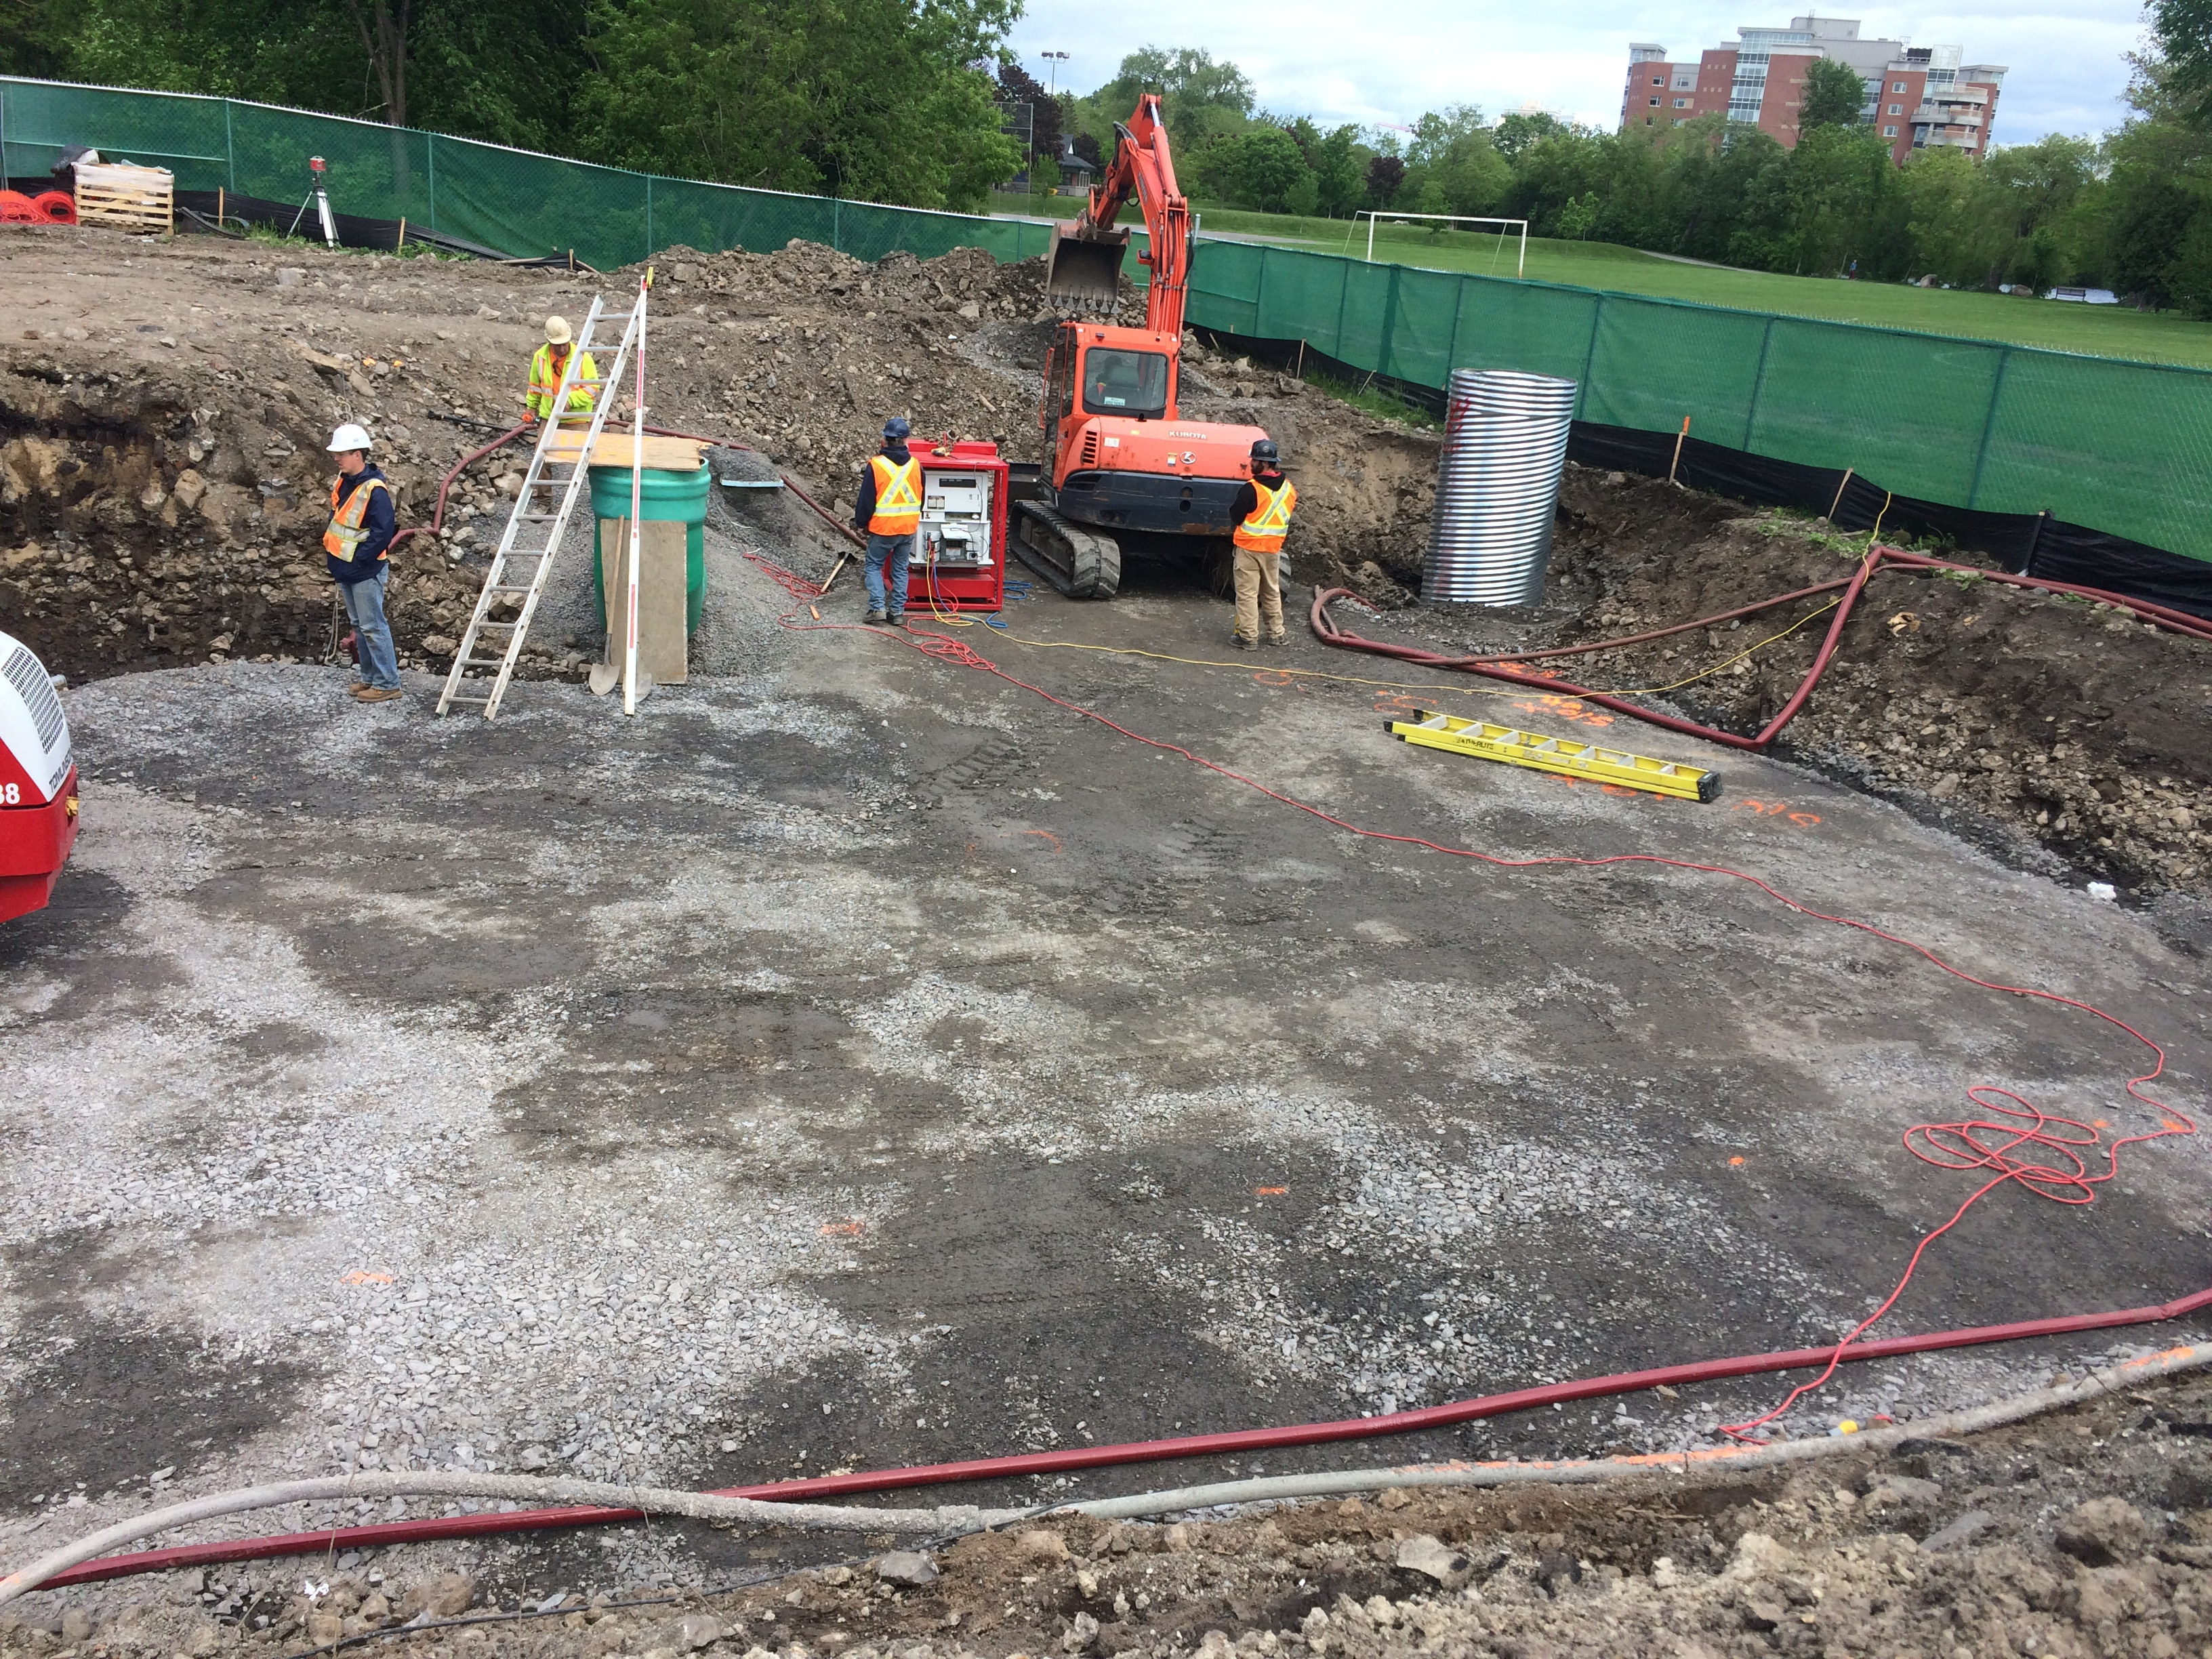 Construction of the new Odour Control Facility in Stanley Park